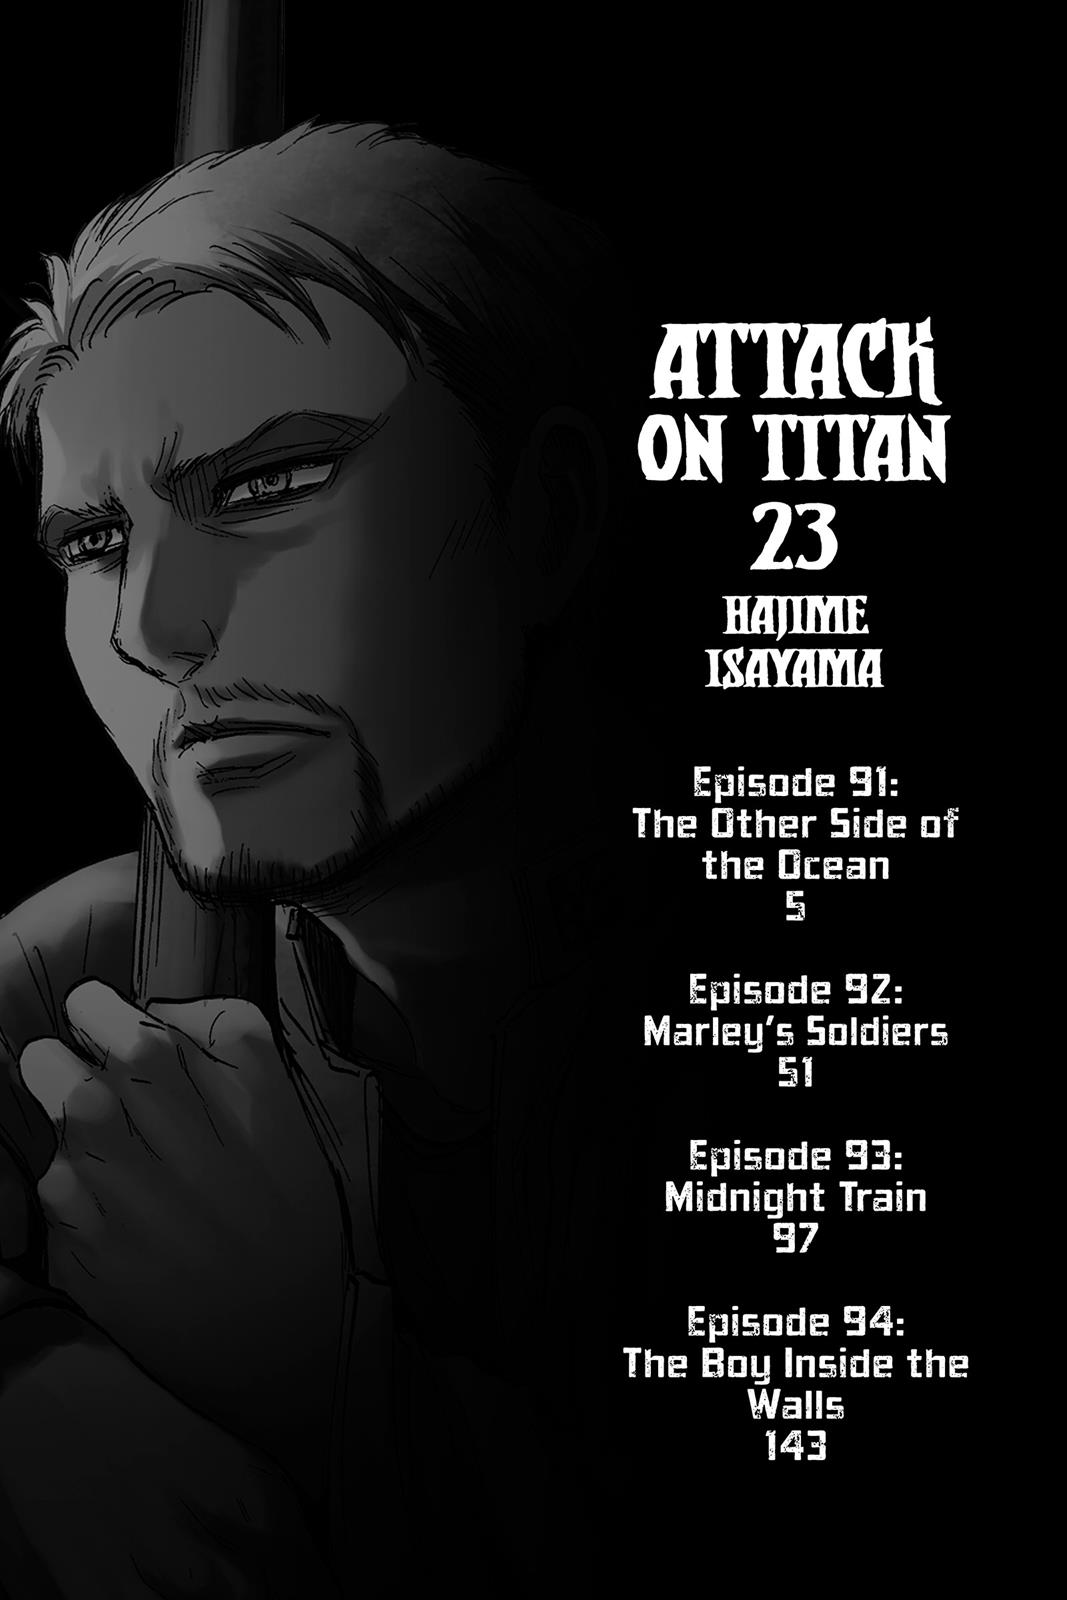 Attack On Titan, Episode 91 image 002